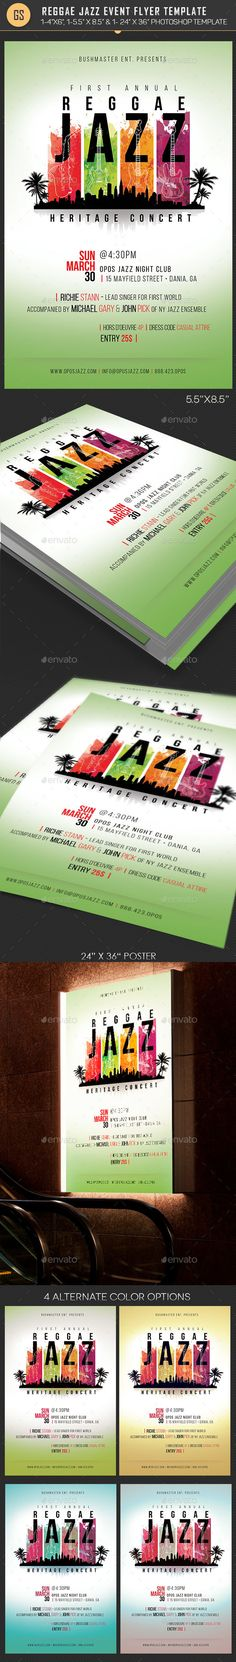 Reggae Jazz Event Flyer Poster #Template - #Events #Flyers Download here: https://graphicriver.net/item/reggae-jazz-event-flyer-poster-template/19532687?ref=alena994